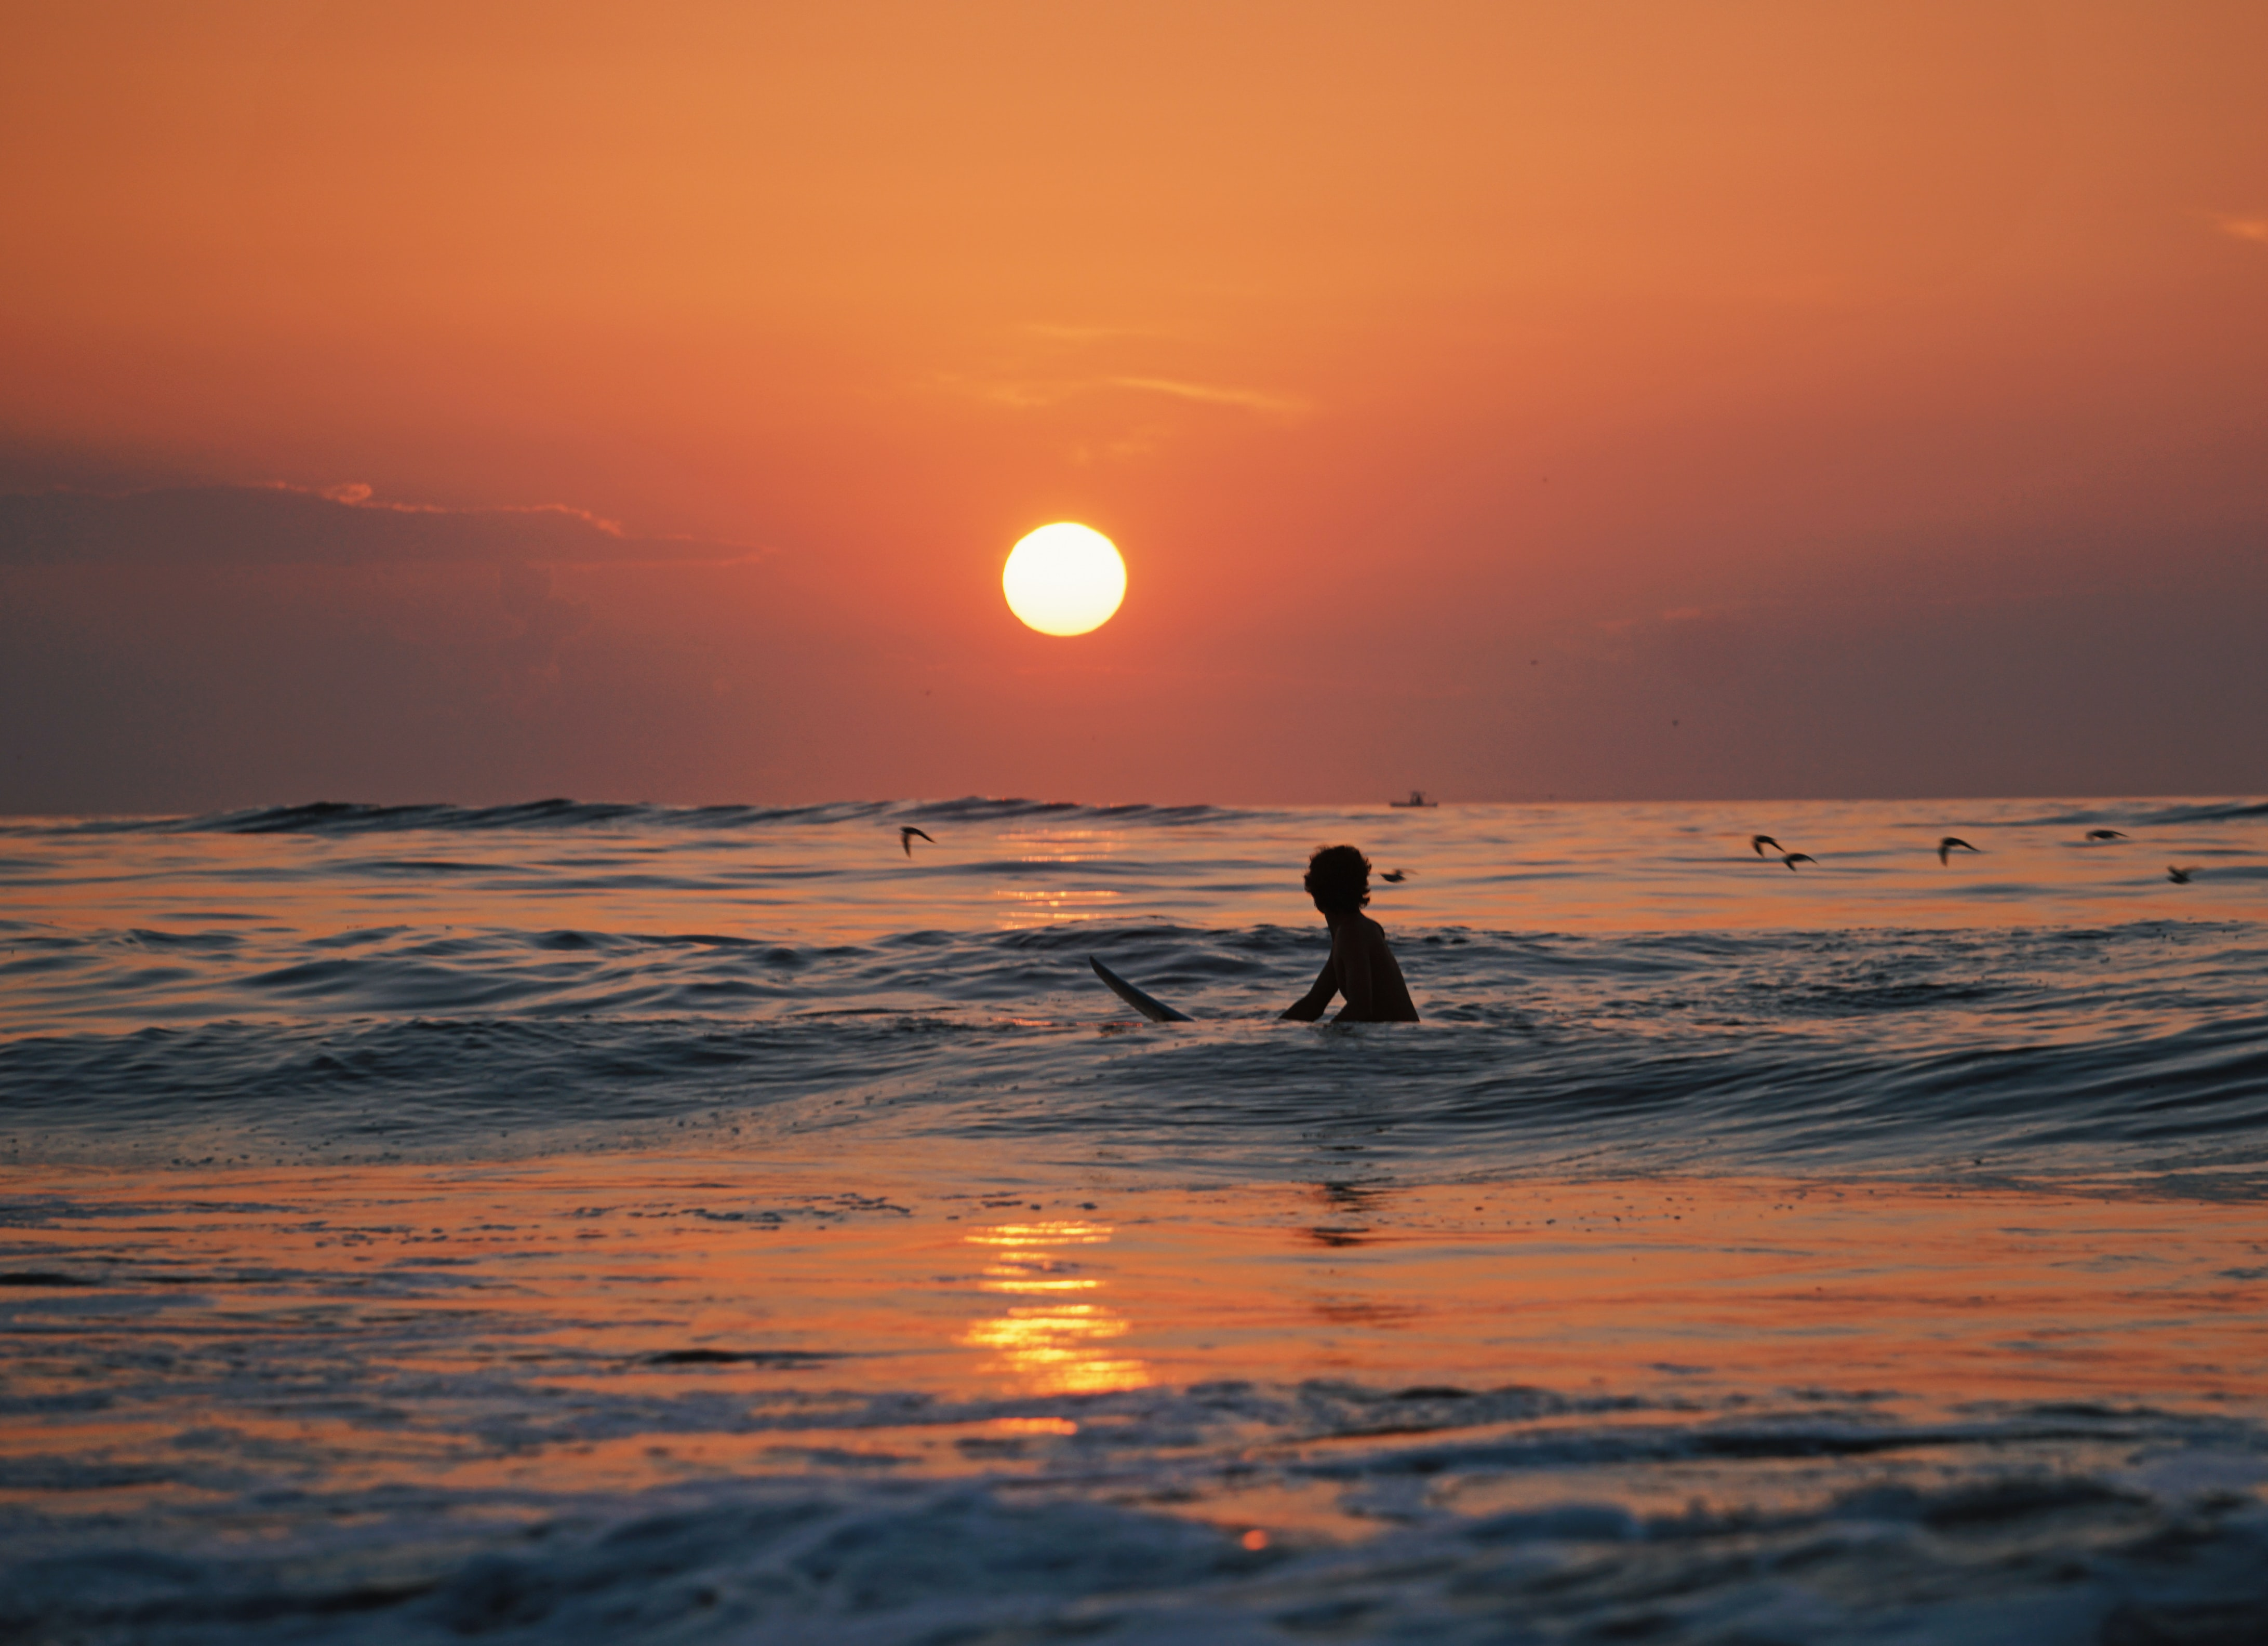 A surfer in the sea at Ocean City, with birds flying over the water and the sun setting over the horizon